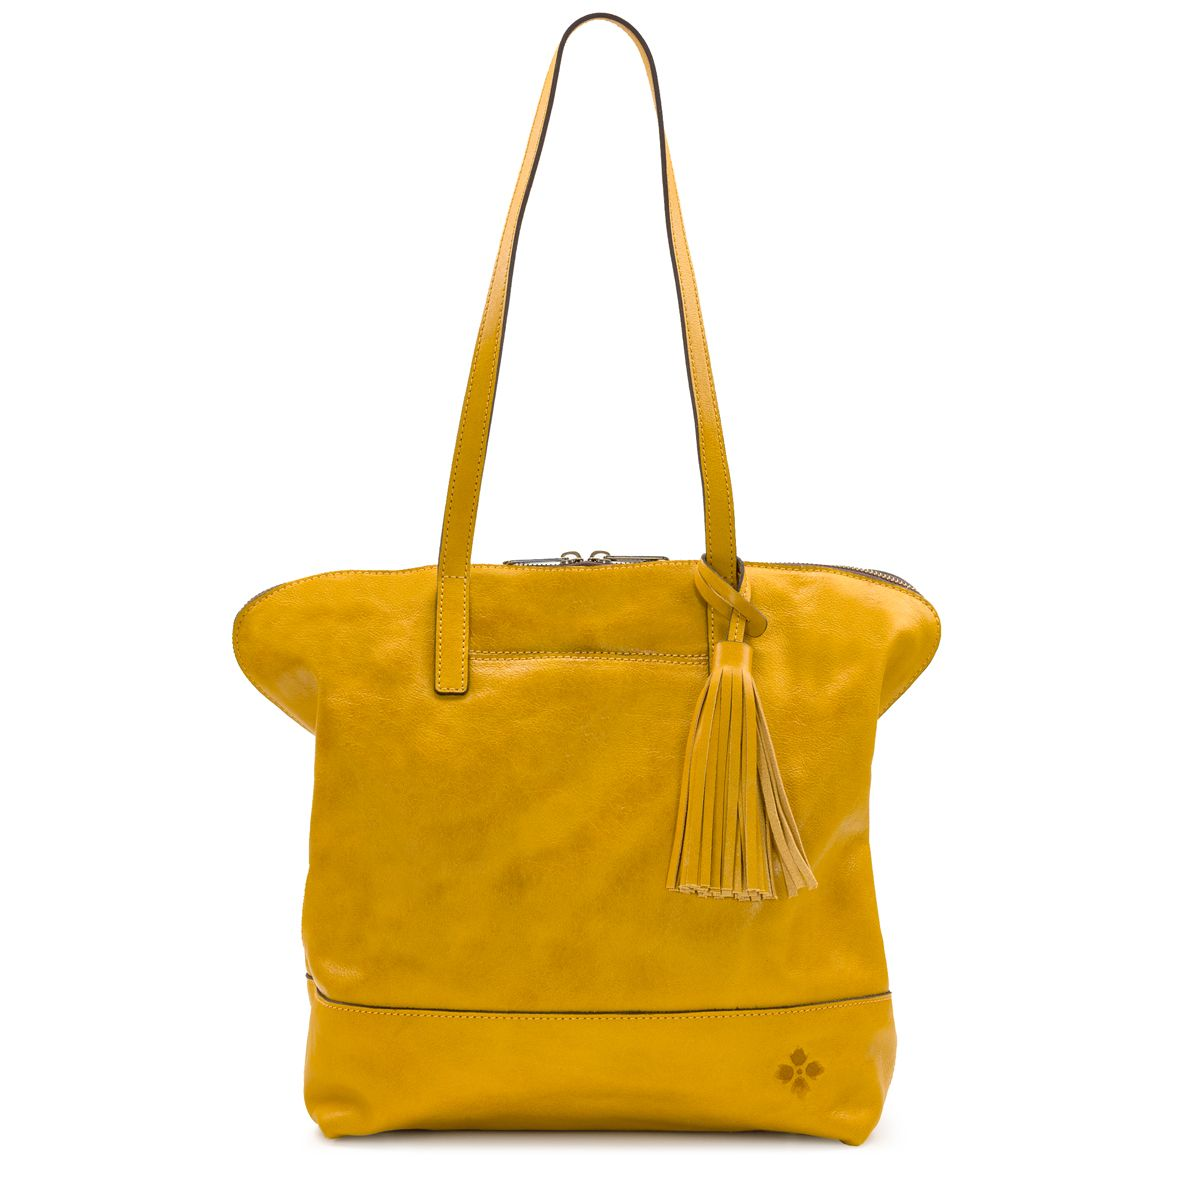 124a103be Patricia Nash Handbags - Macy's